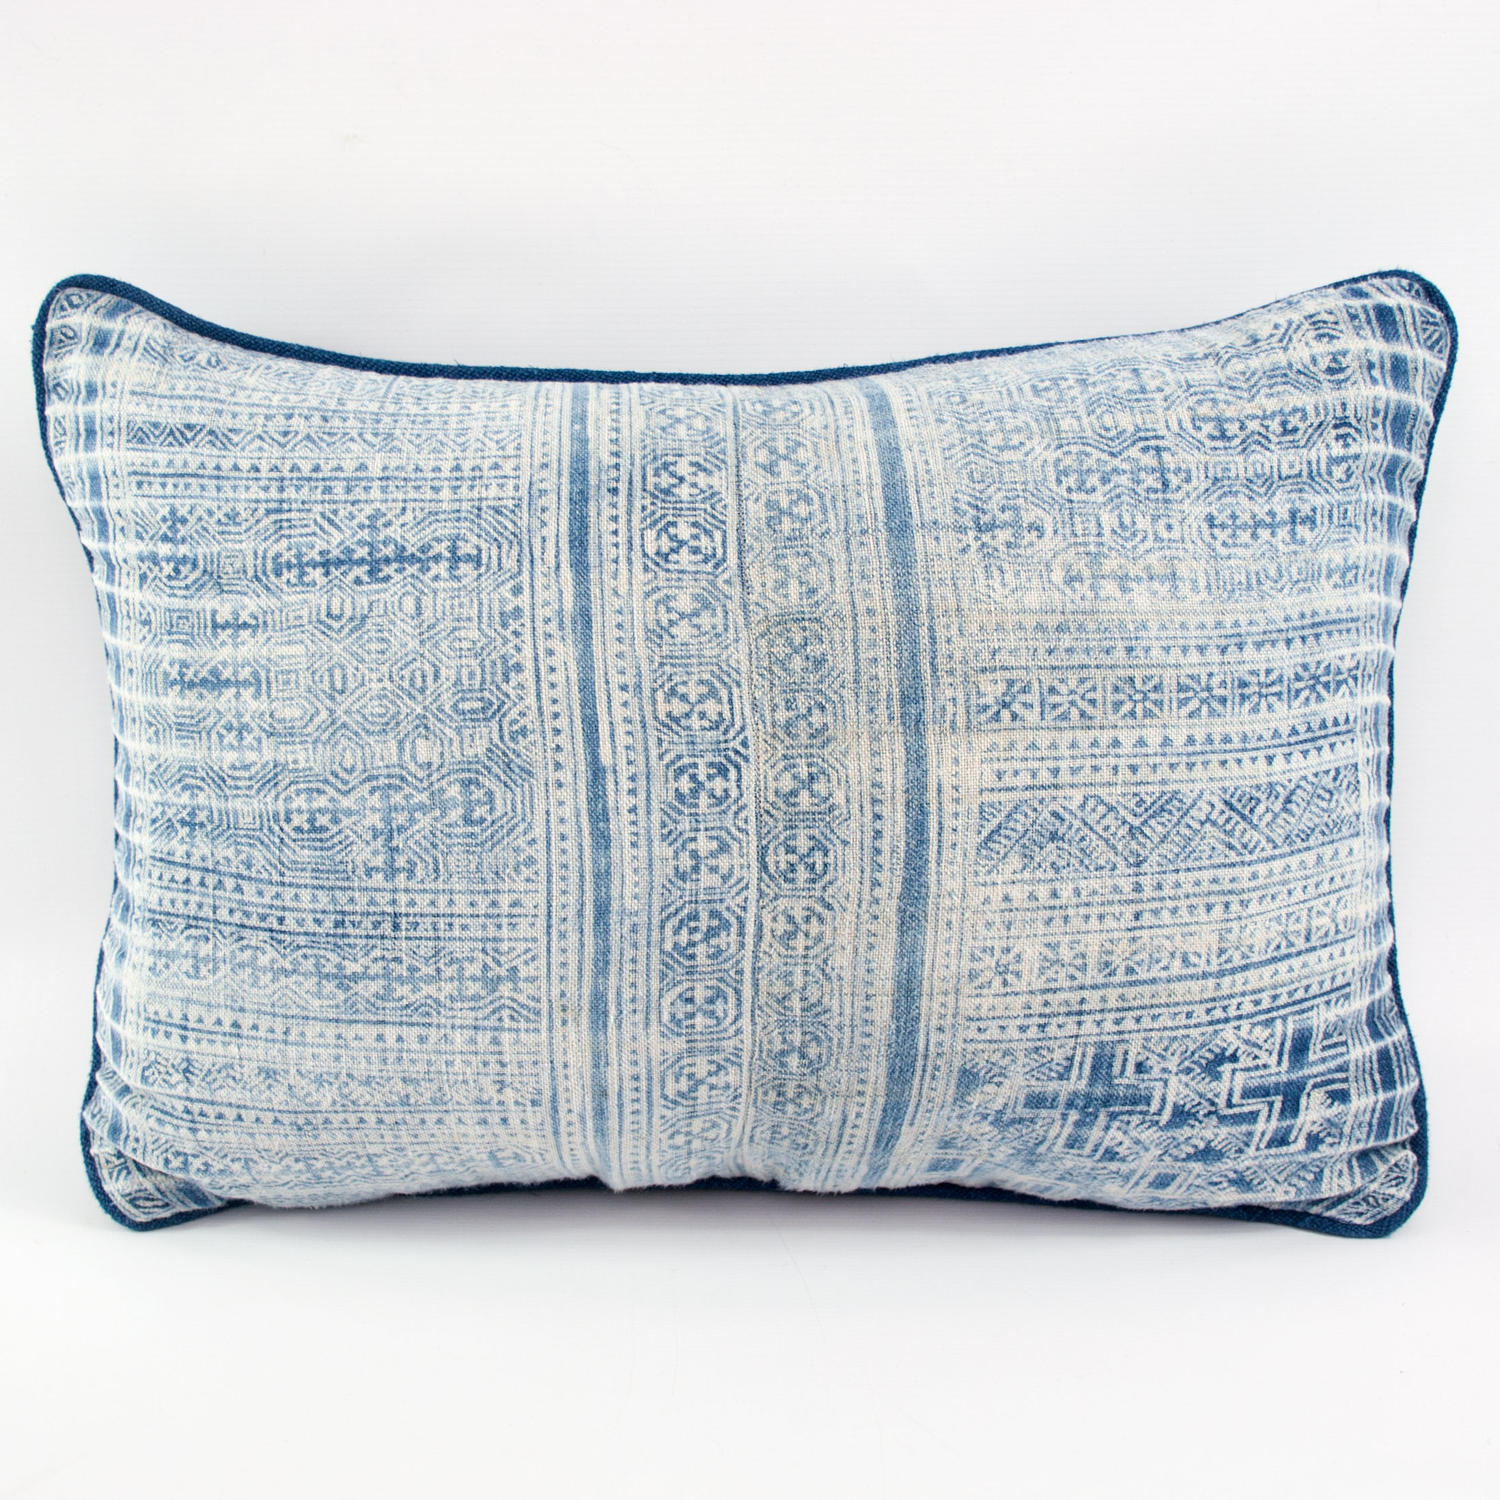 Miao Hemp Cushions